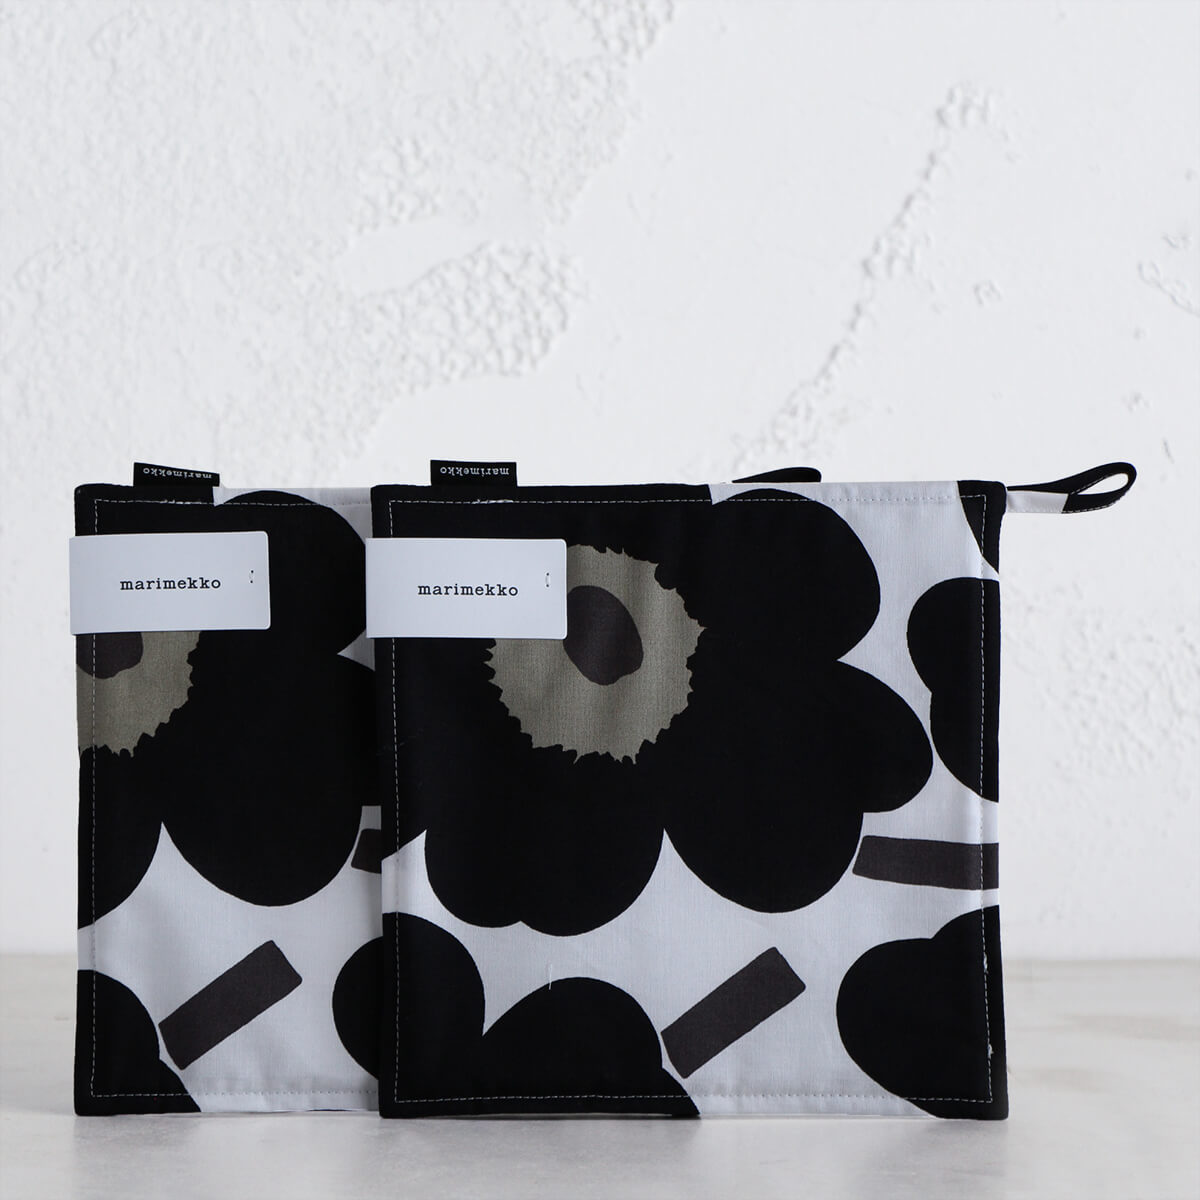 MARIMEKKO  |  PIENI UNIKKO POT HOLDER BUNDLE  |  BLACK + WHITE + OLIVE  |  OVEN MITT